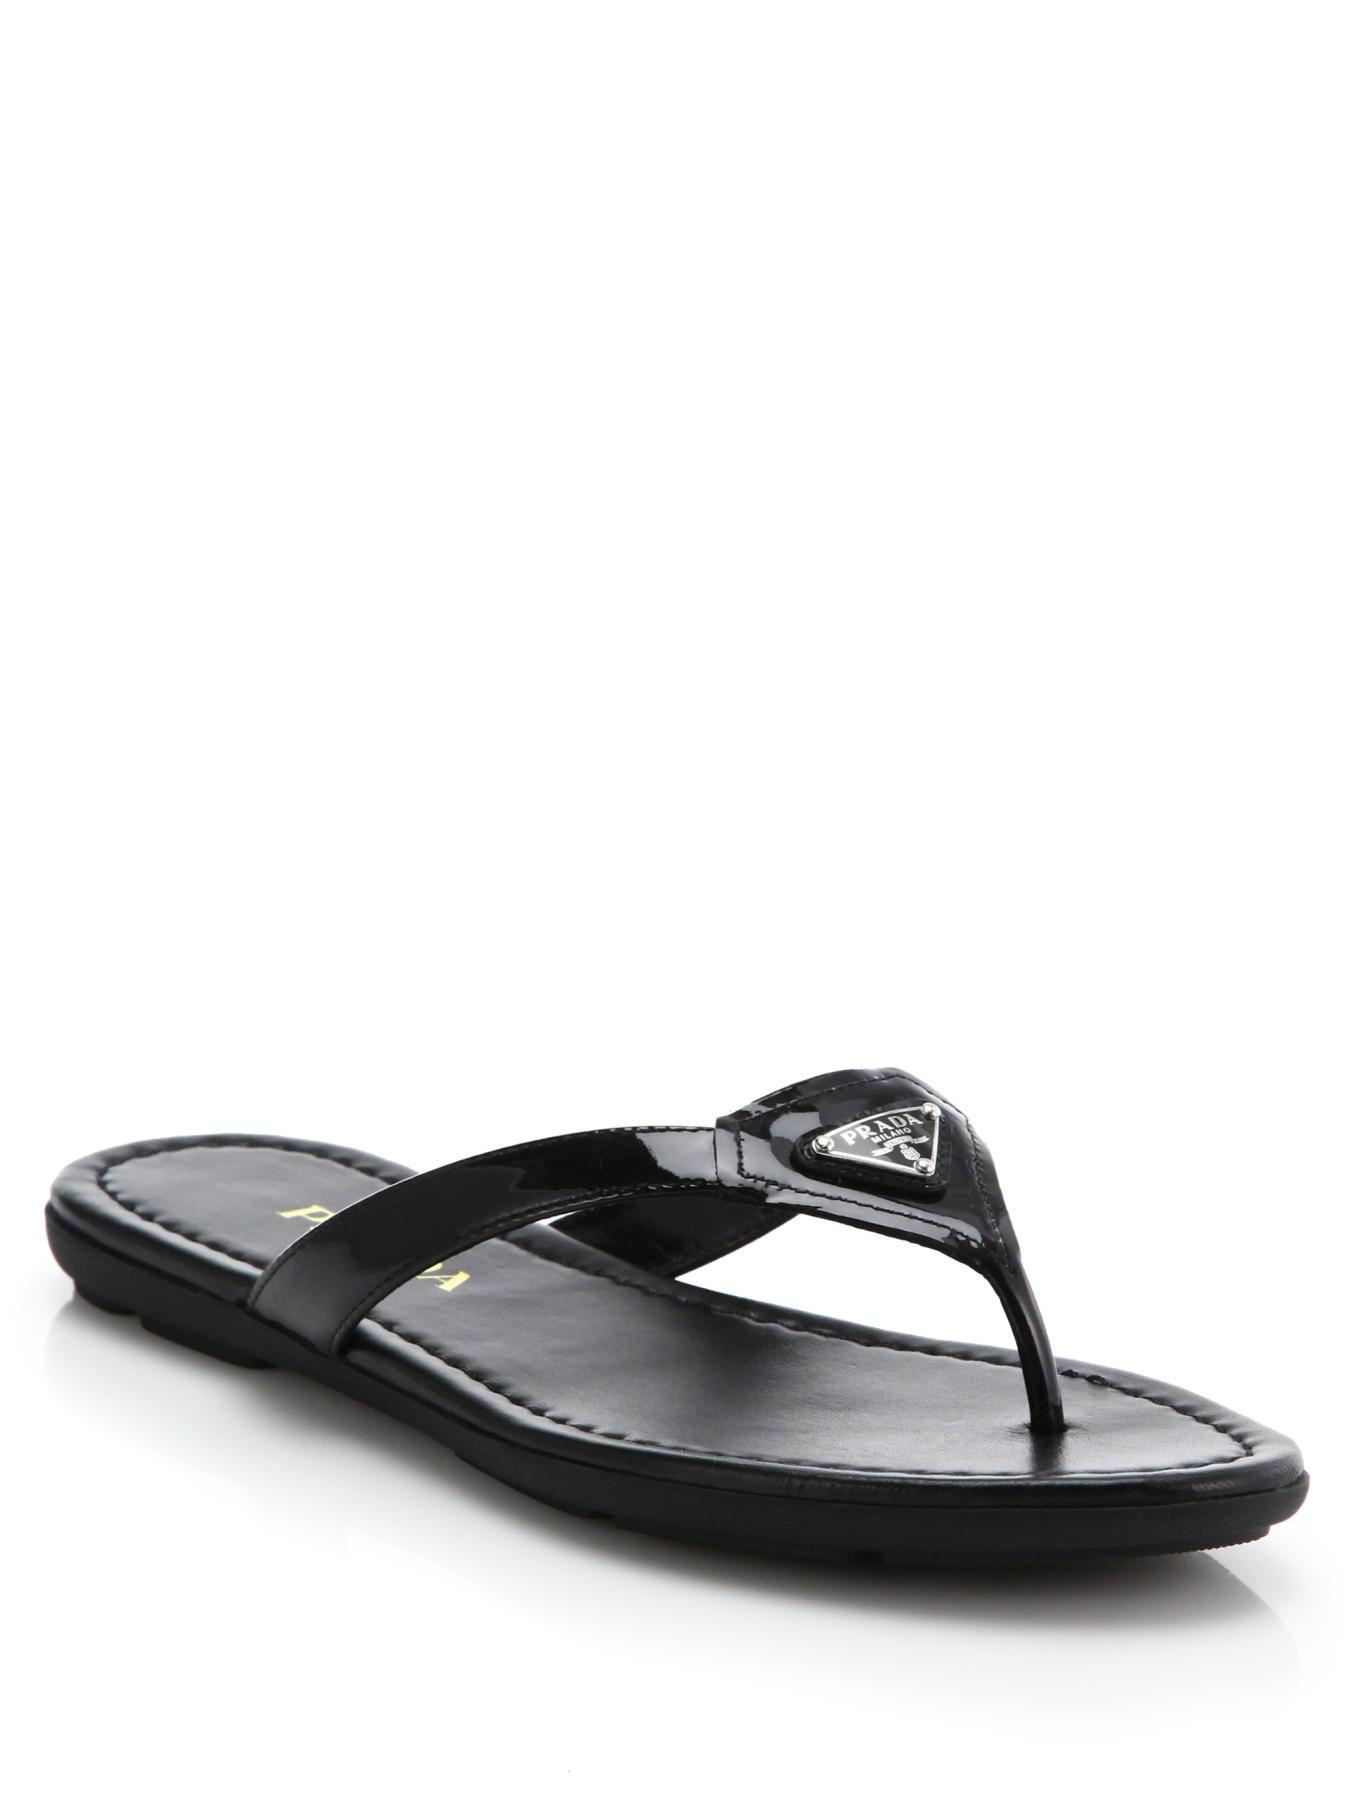 5af1cac0c7fd5f Lyst - Prada Logo Patent Leather Thong Sandals in Black